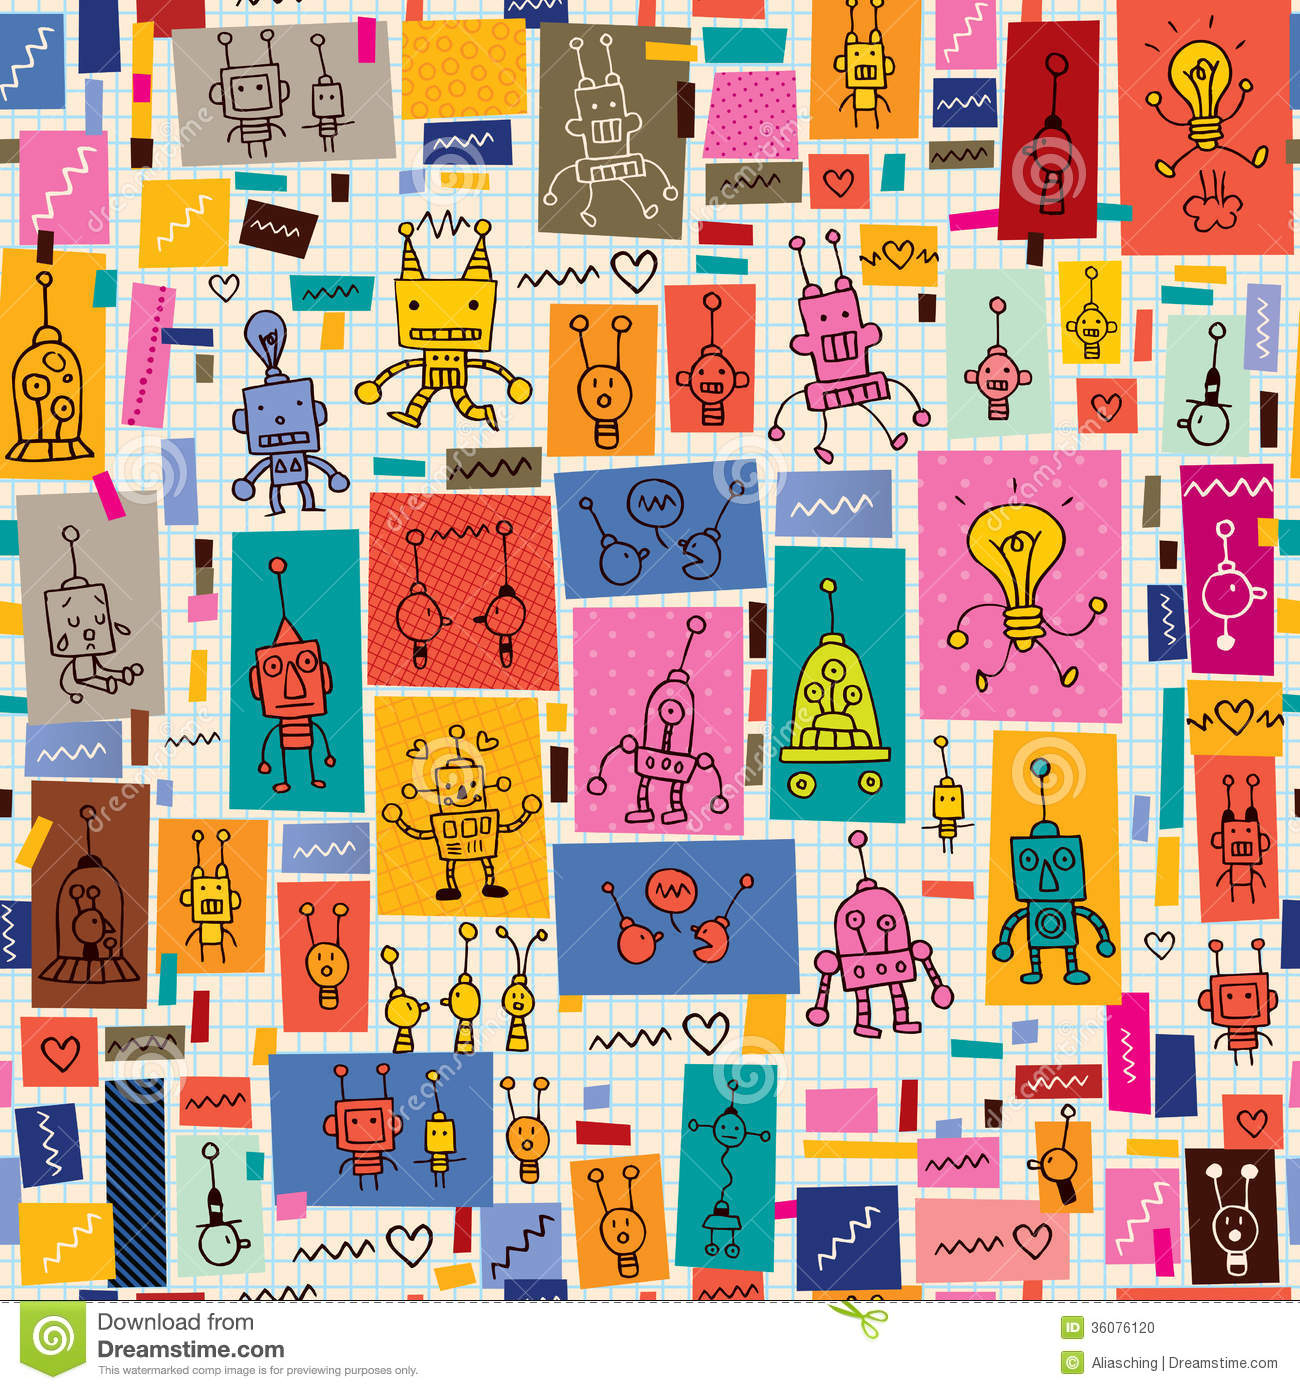 Cute Robots Collage Cartoon Retro Doodle Pattern Stock